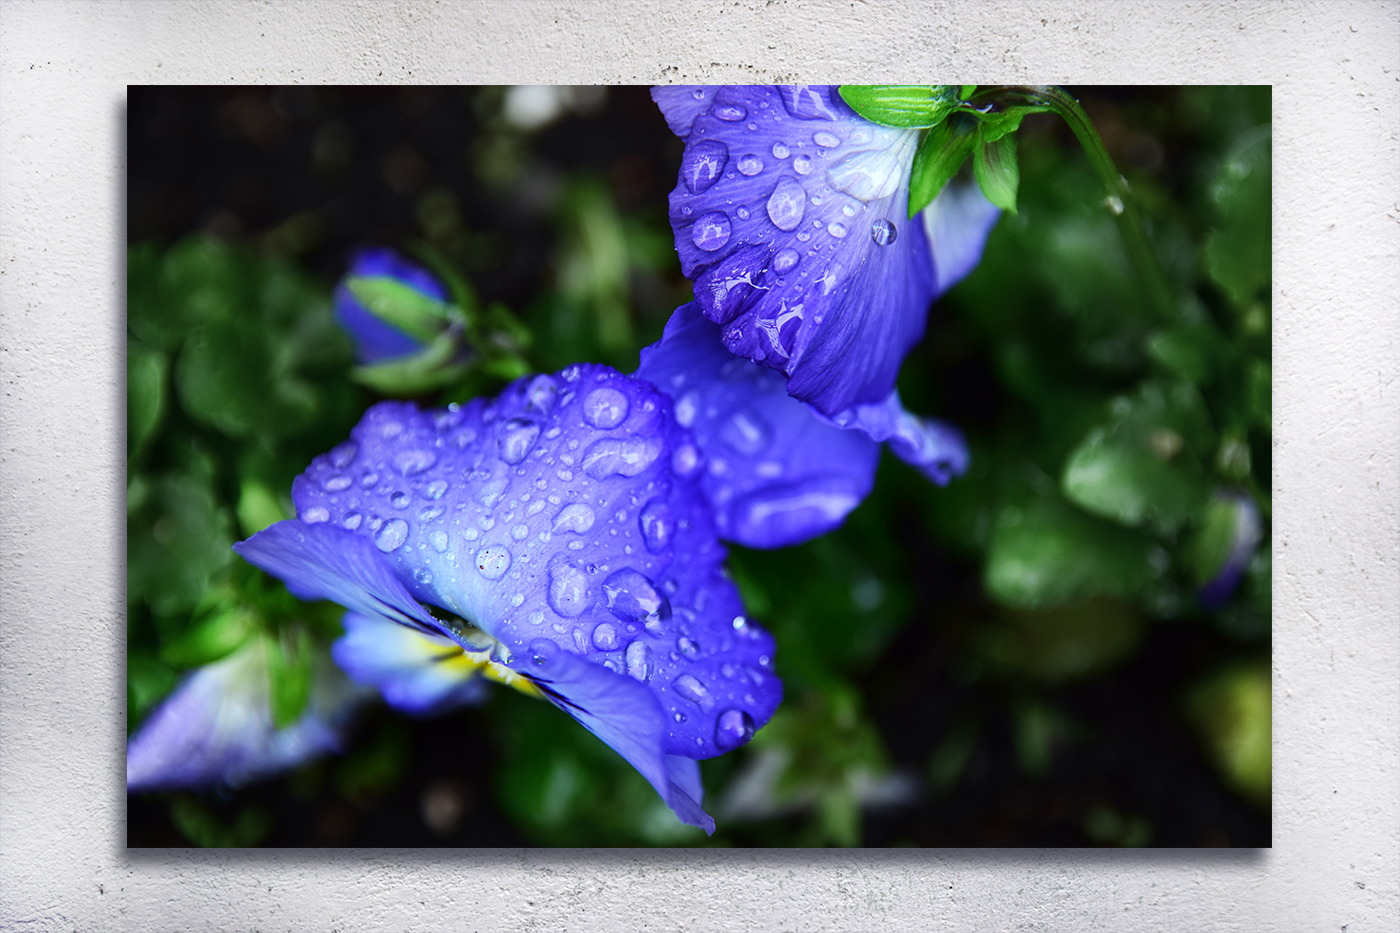 Nature photo, floral photo, spring photo, pansies photo example image 2